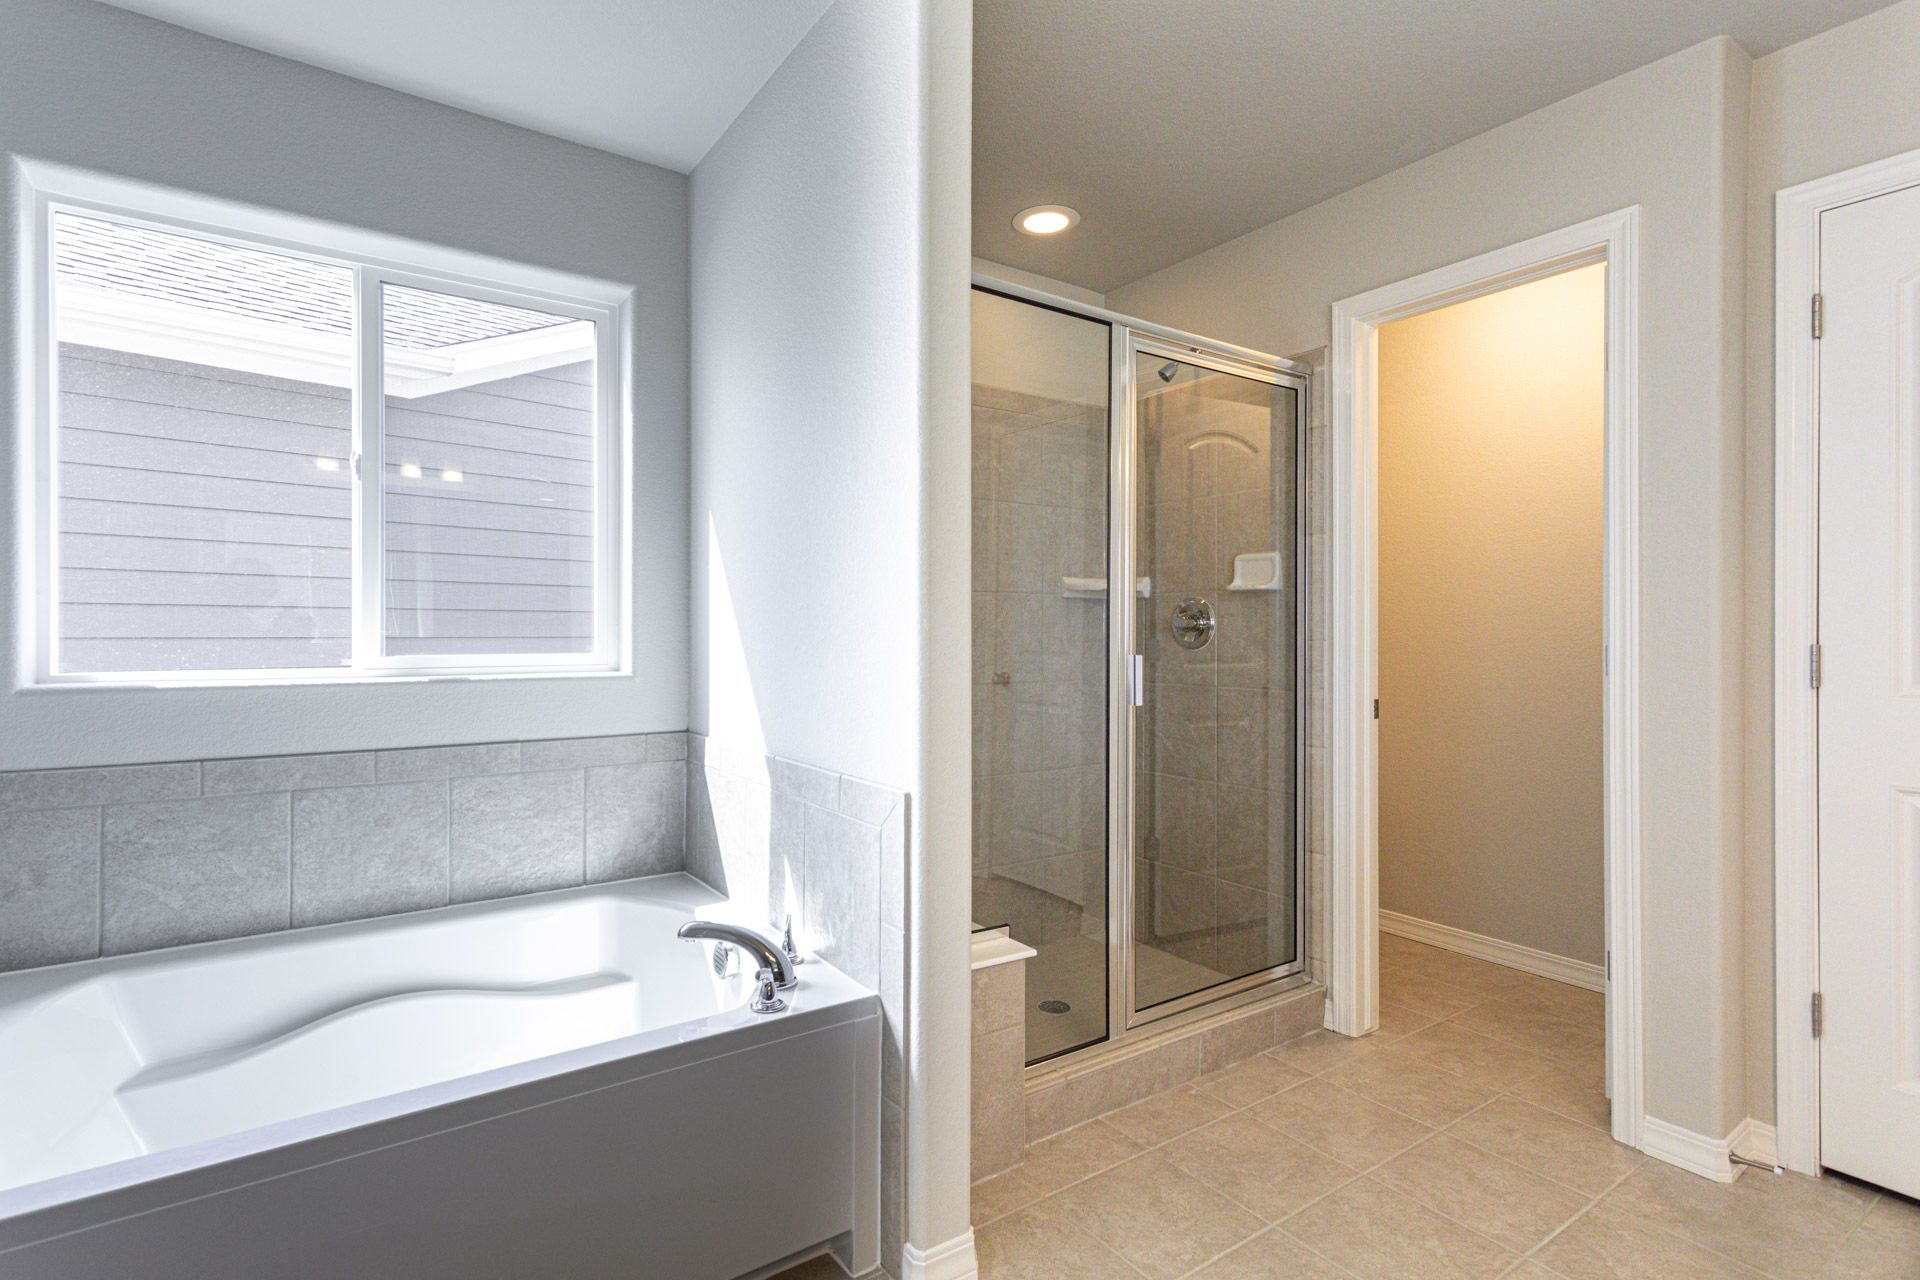 Bathroom featured in The Wilmington By Challenger Homes in Colorado Springs, CO